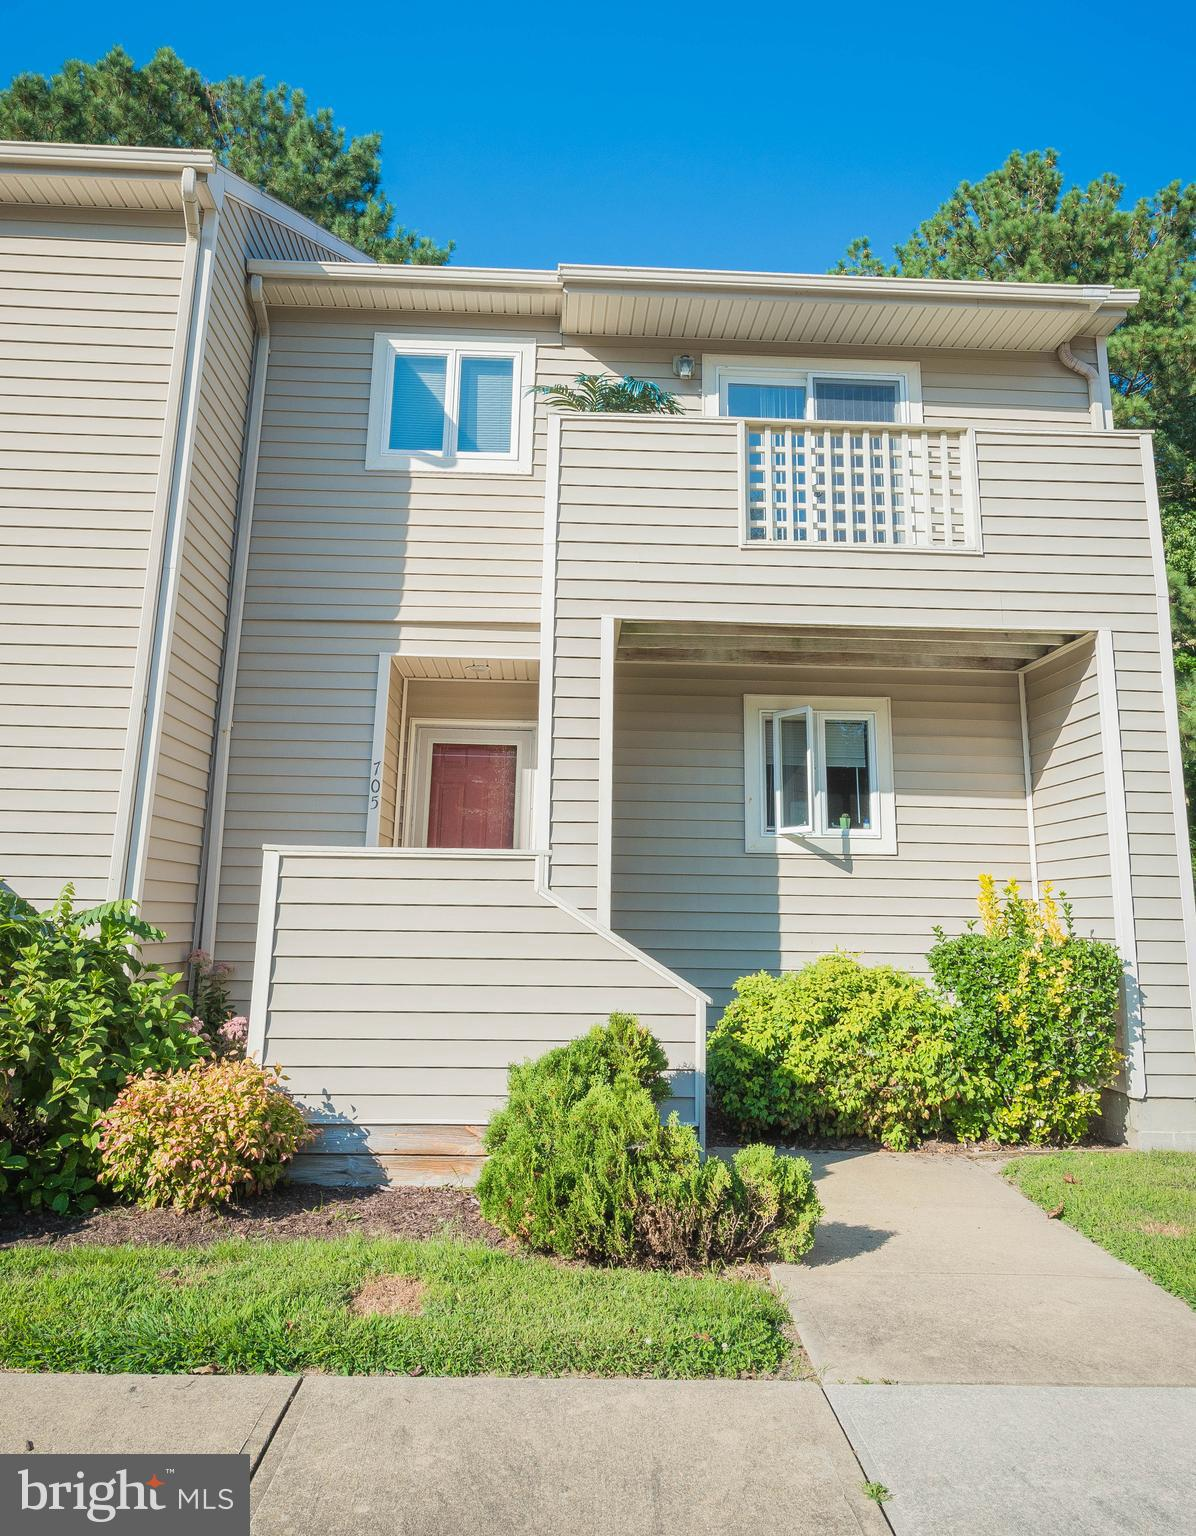 Turn Key 3 bed 2.5 bath END UNIT in the Glade community. This condo features a large master bed room